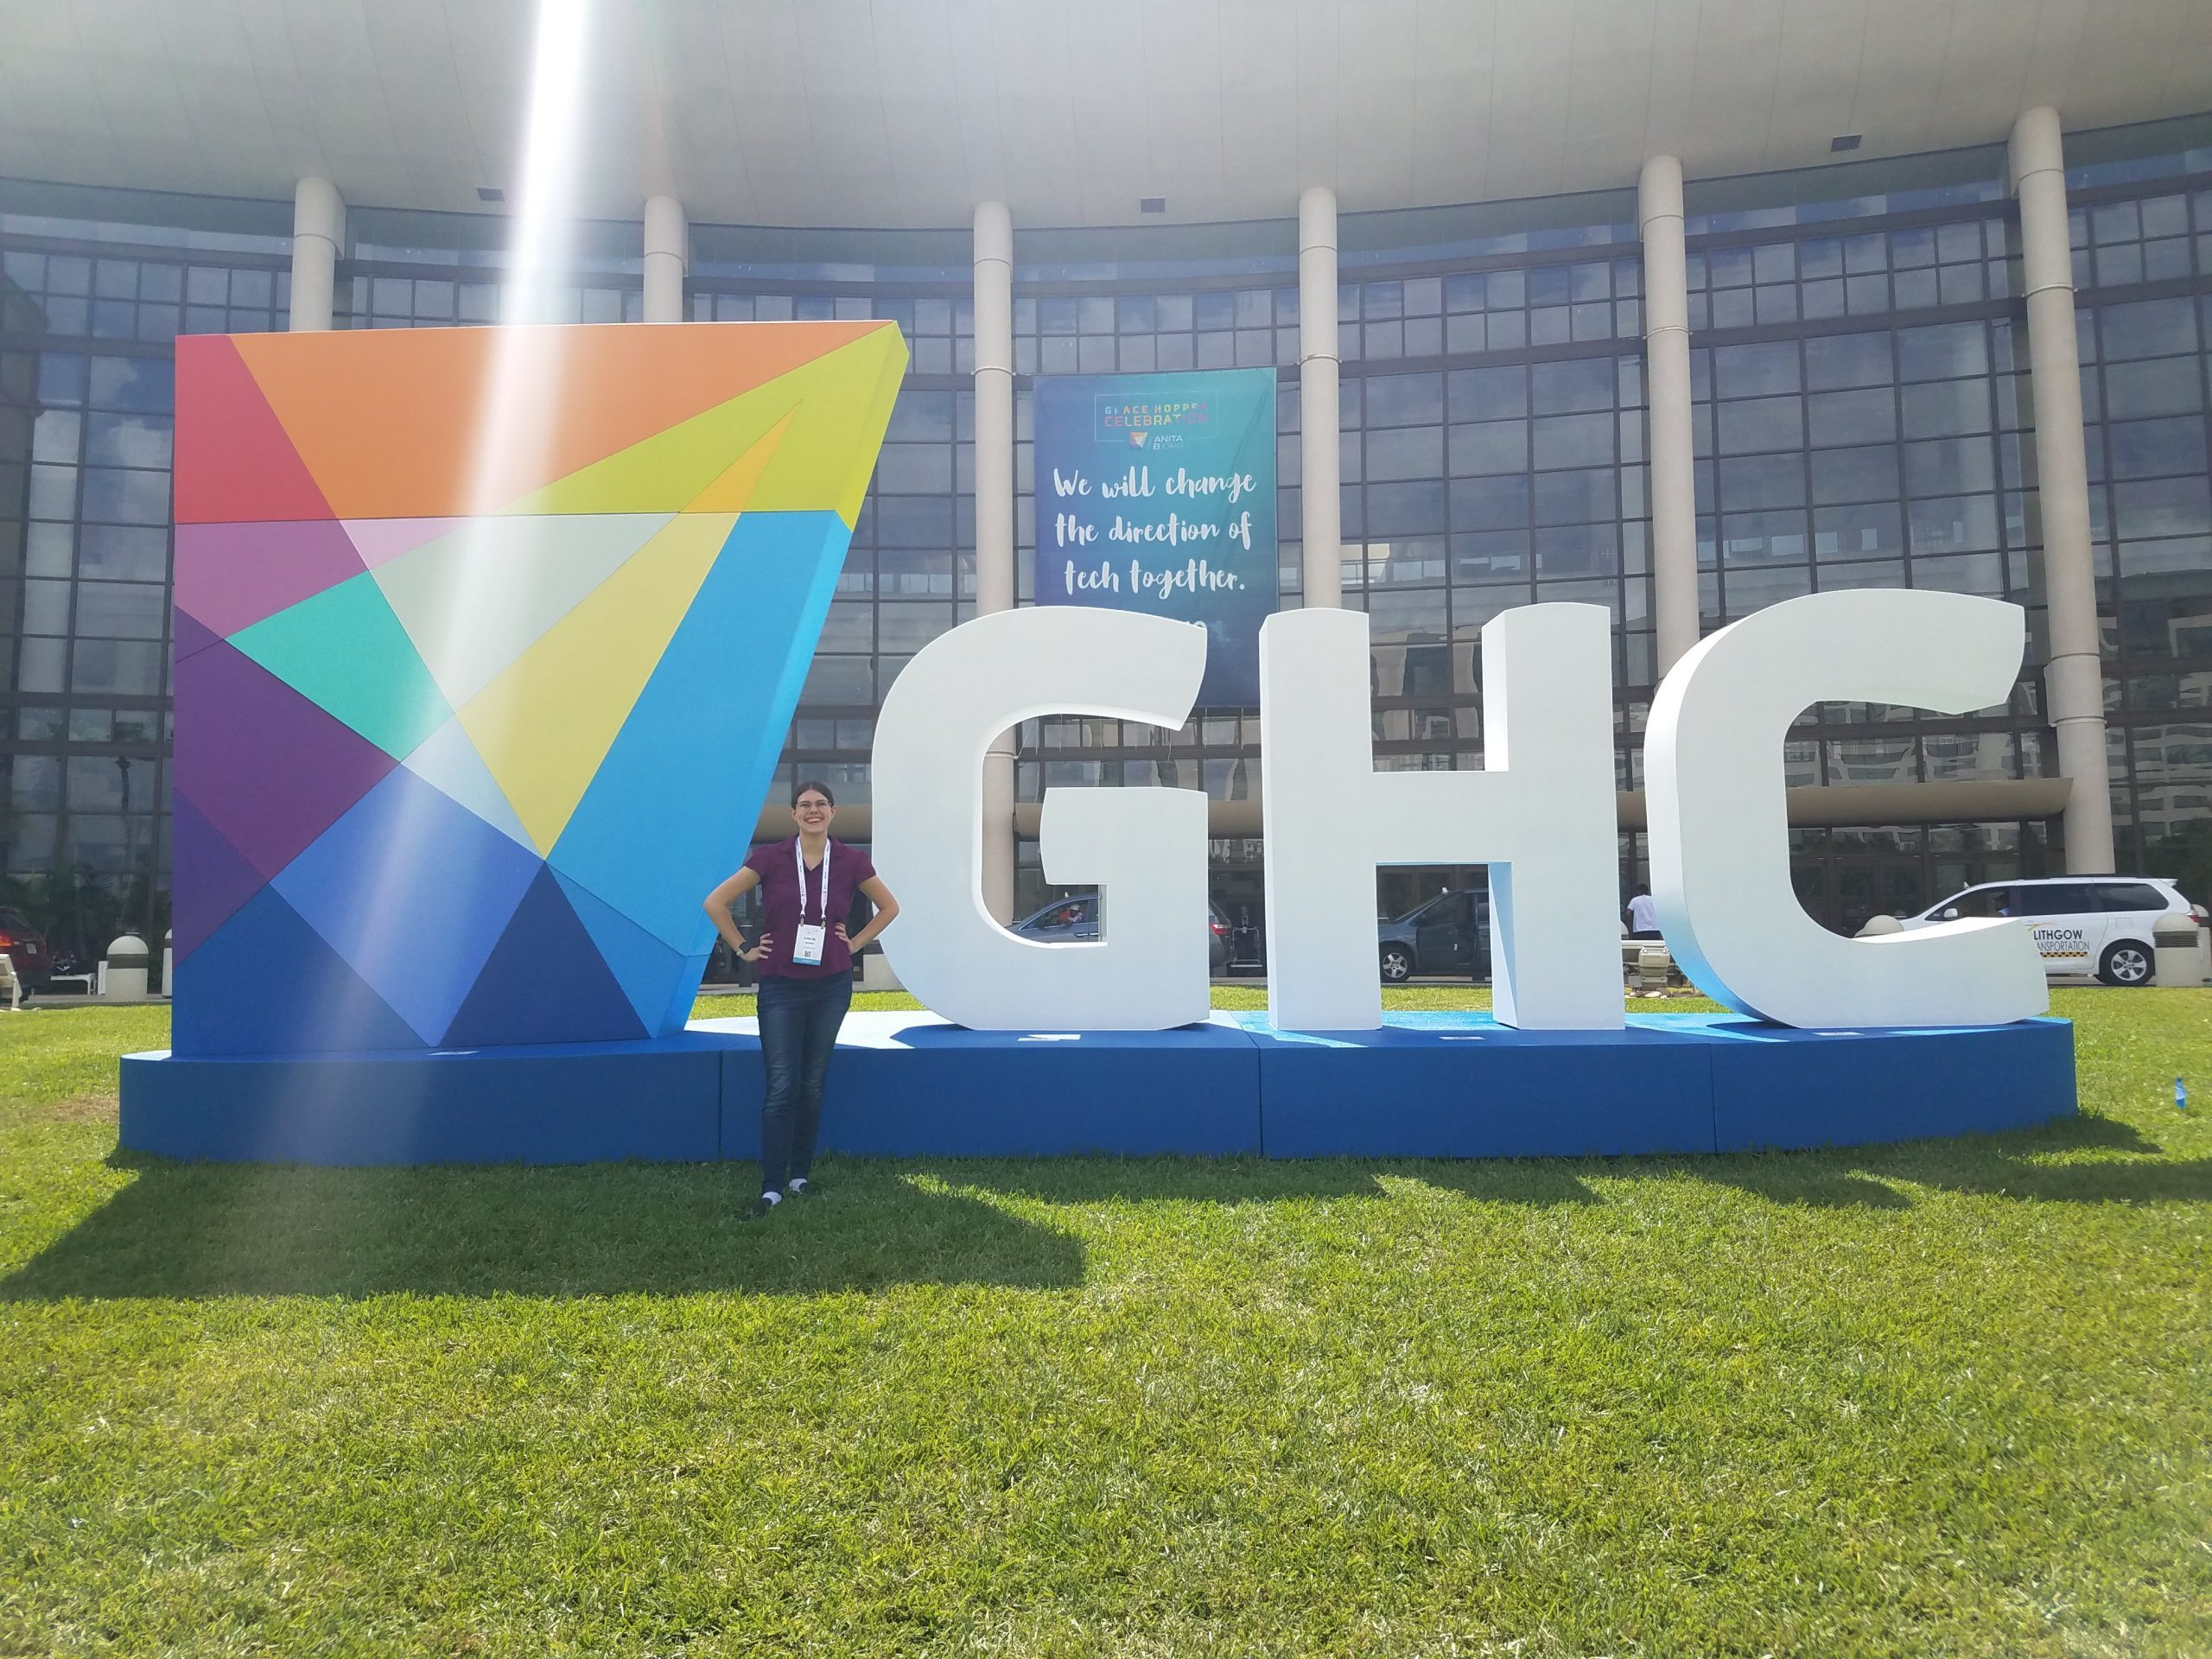 Chloe in front of the GHC sign.